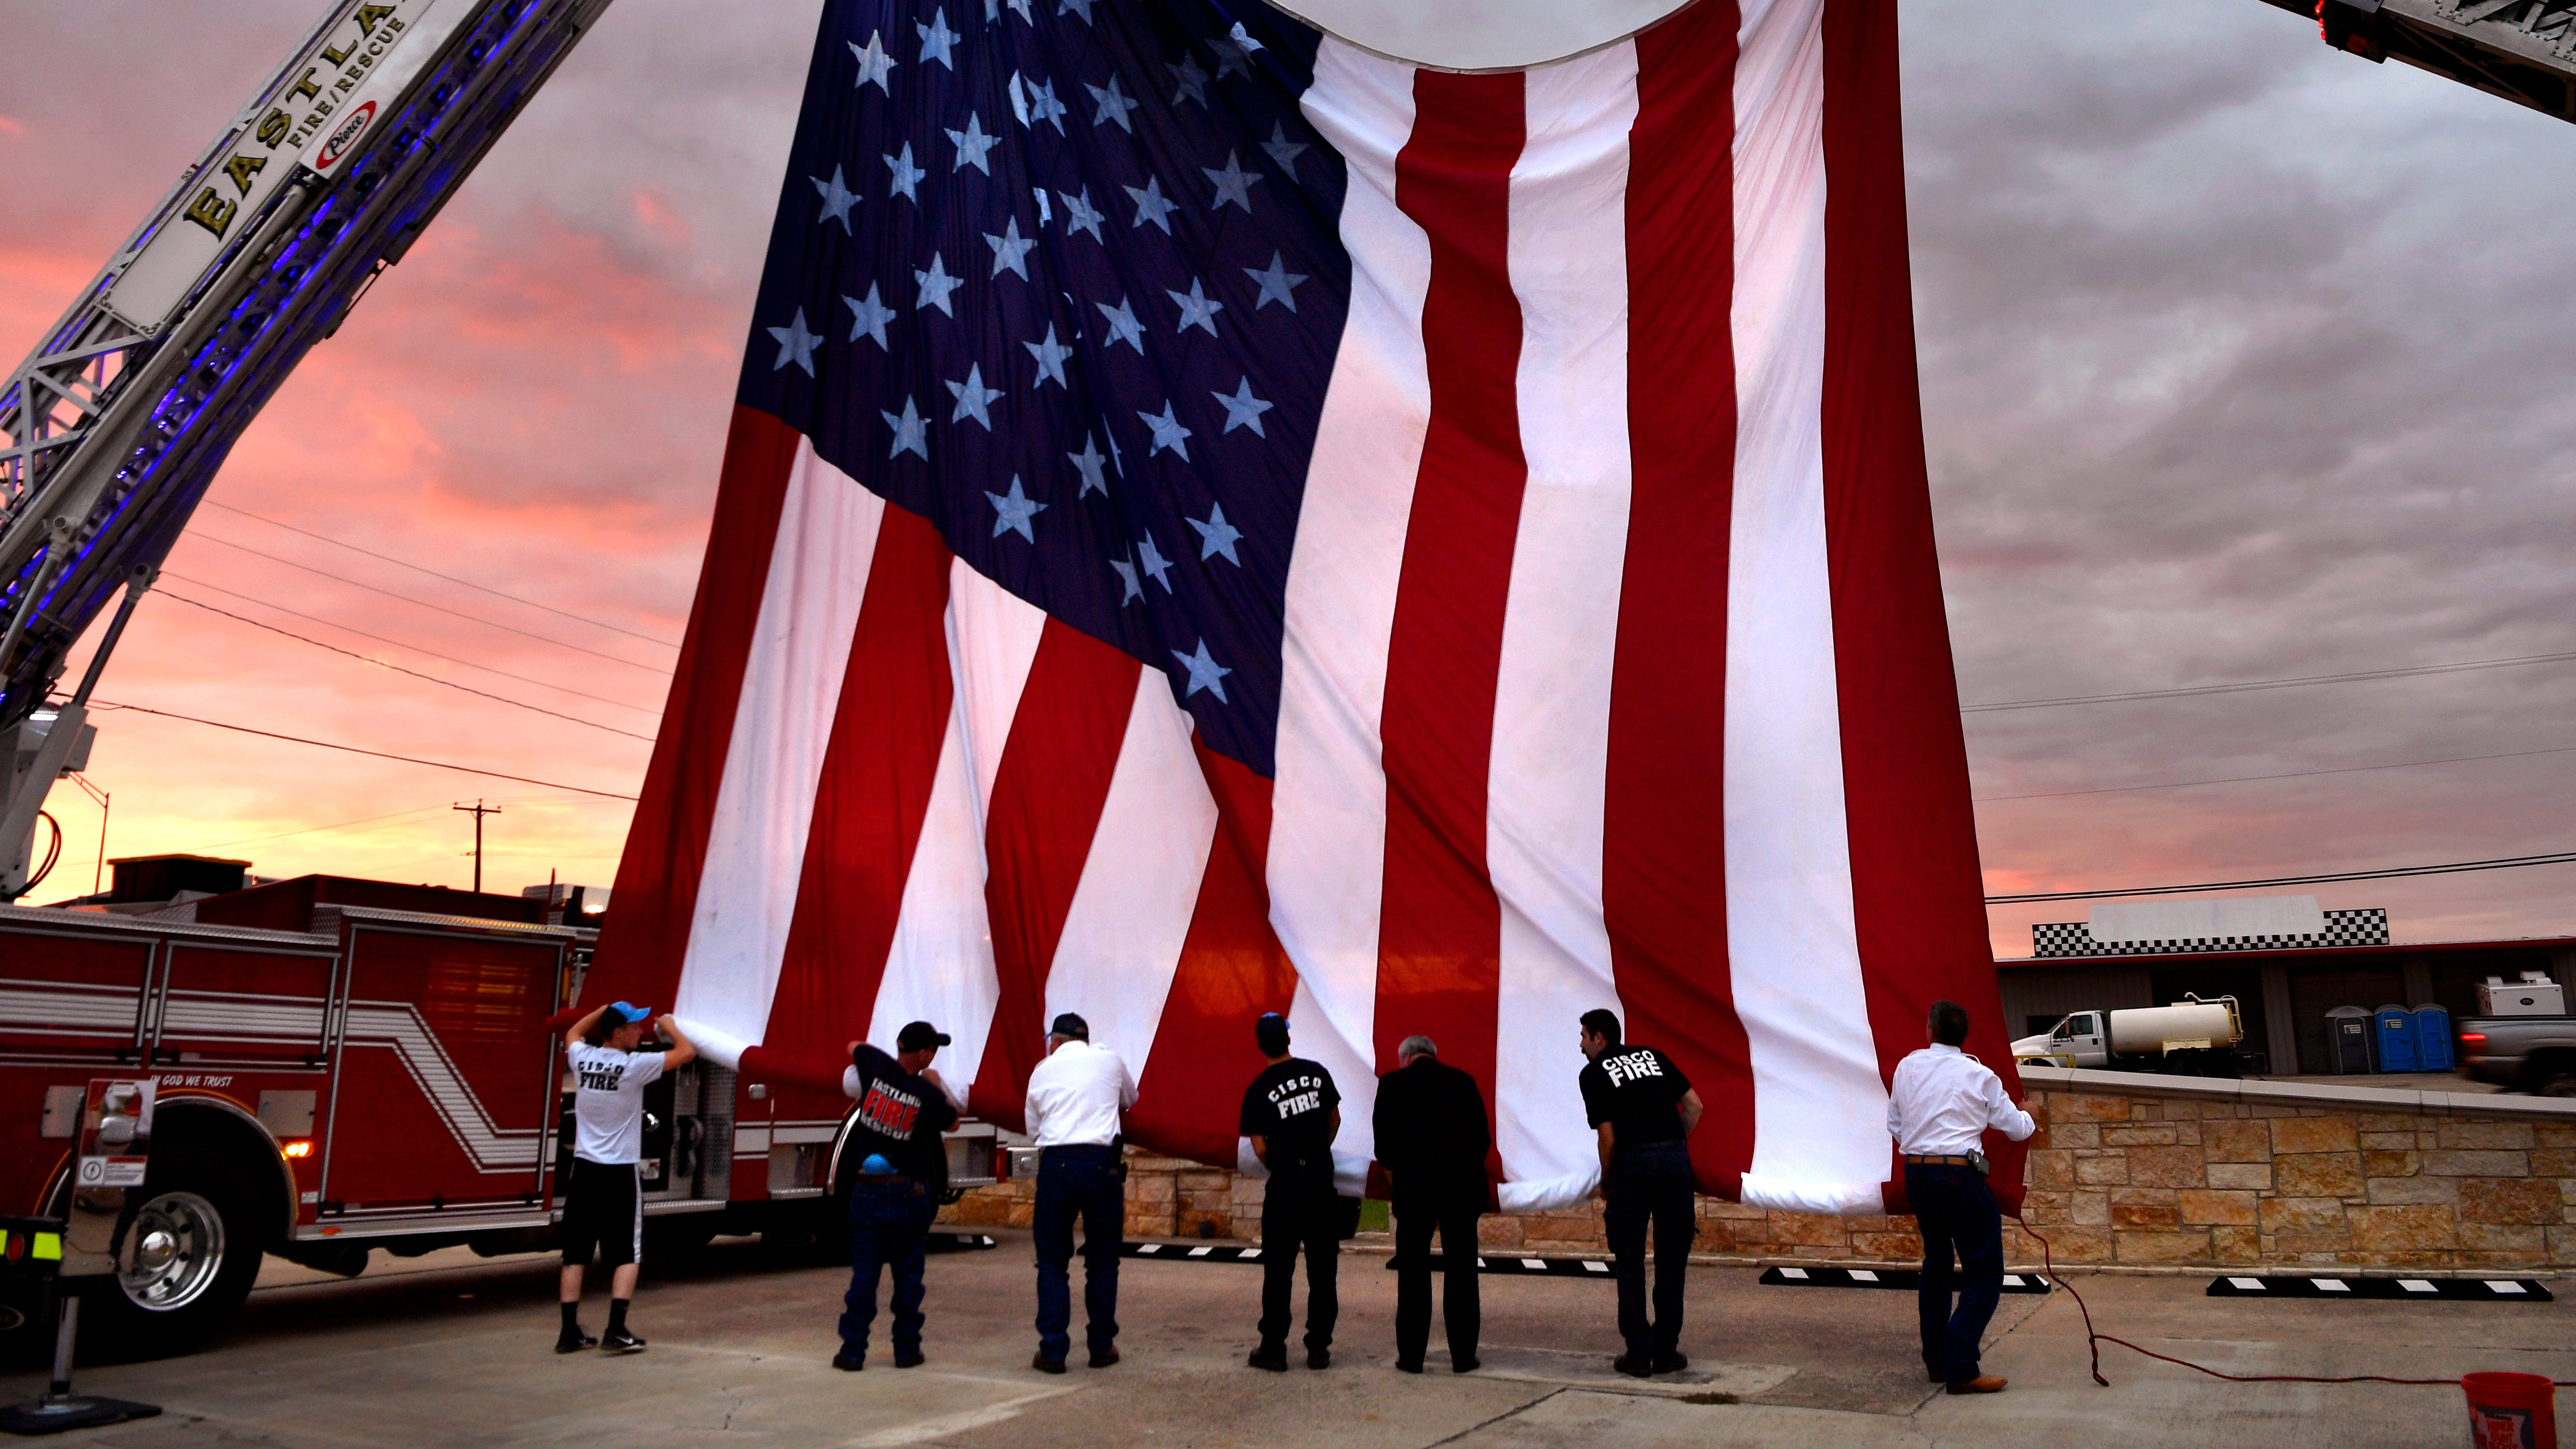 Eastland County firefighters roll a 30-by-60-foot American flag at the conclusion of a 9/11 Remembrance Day service sponsored by the Eastland County Republican Party Tuesday Sept. 11, 2018. The event was held at the River of Life Church youth center.